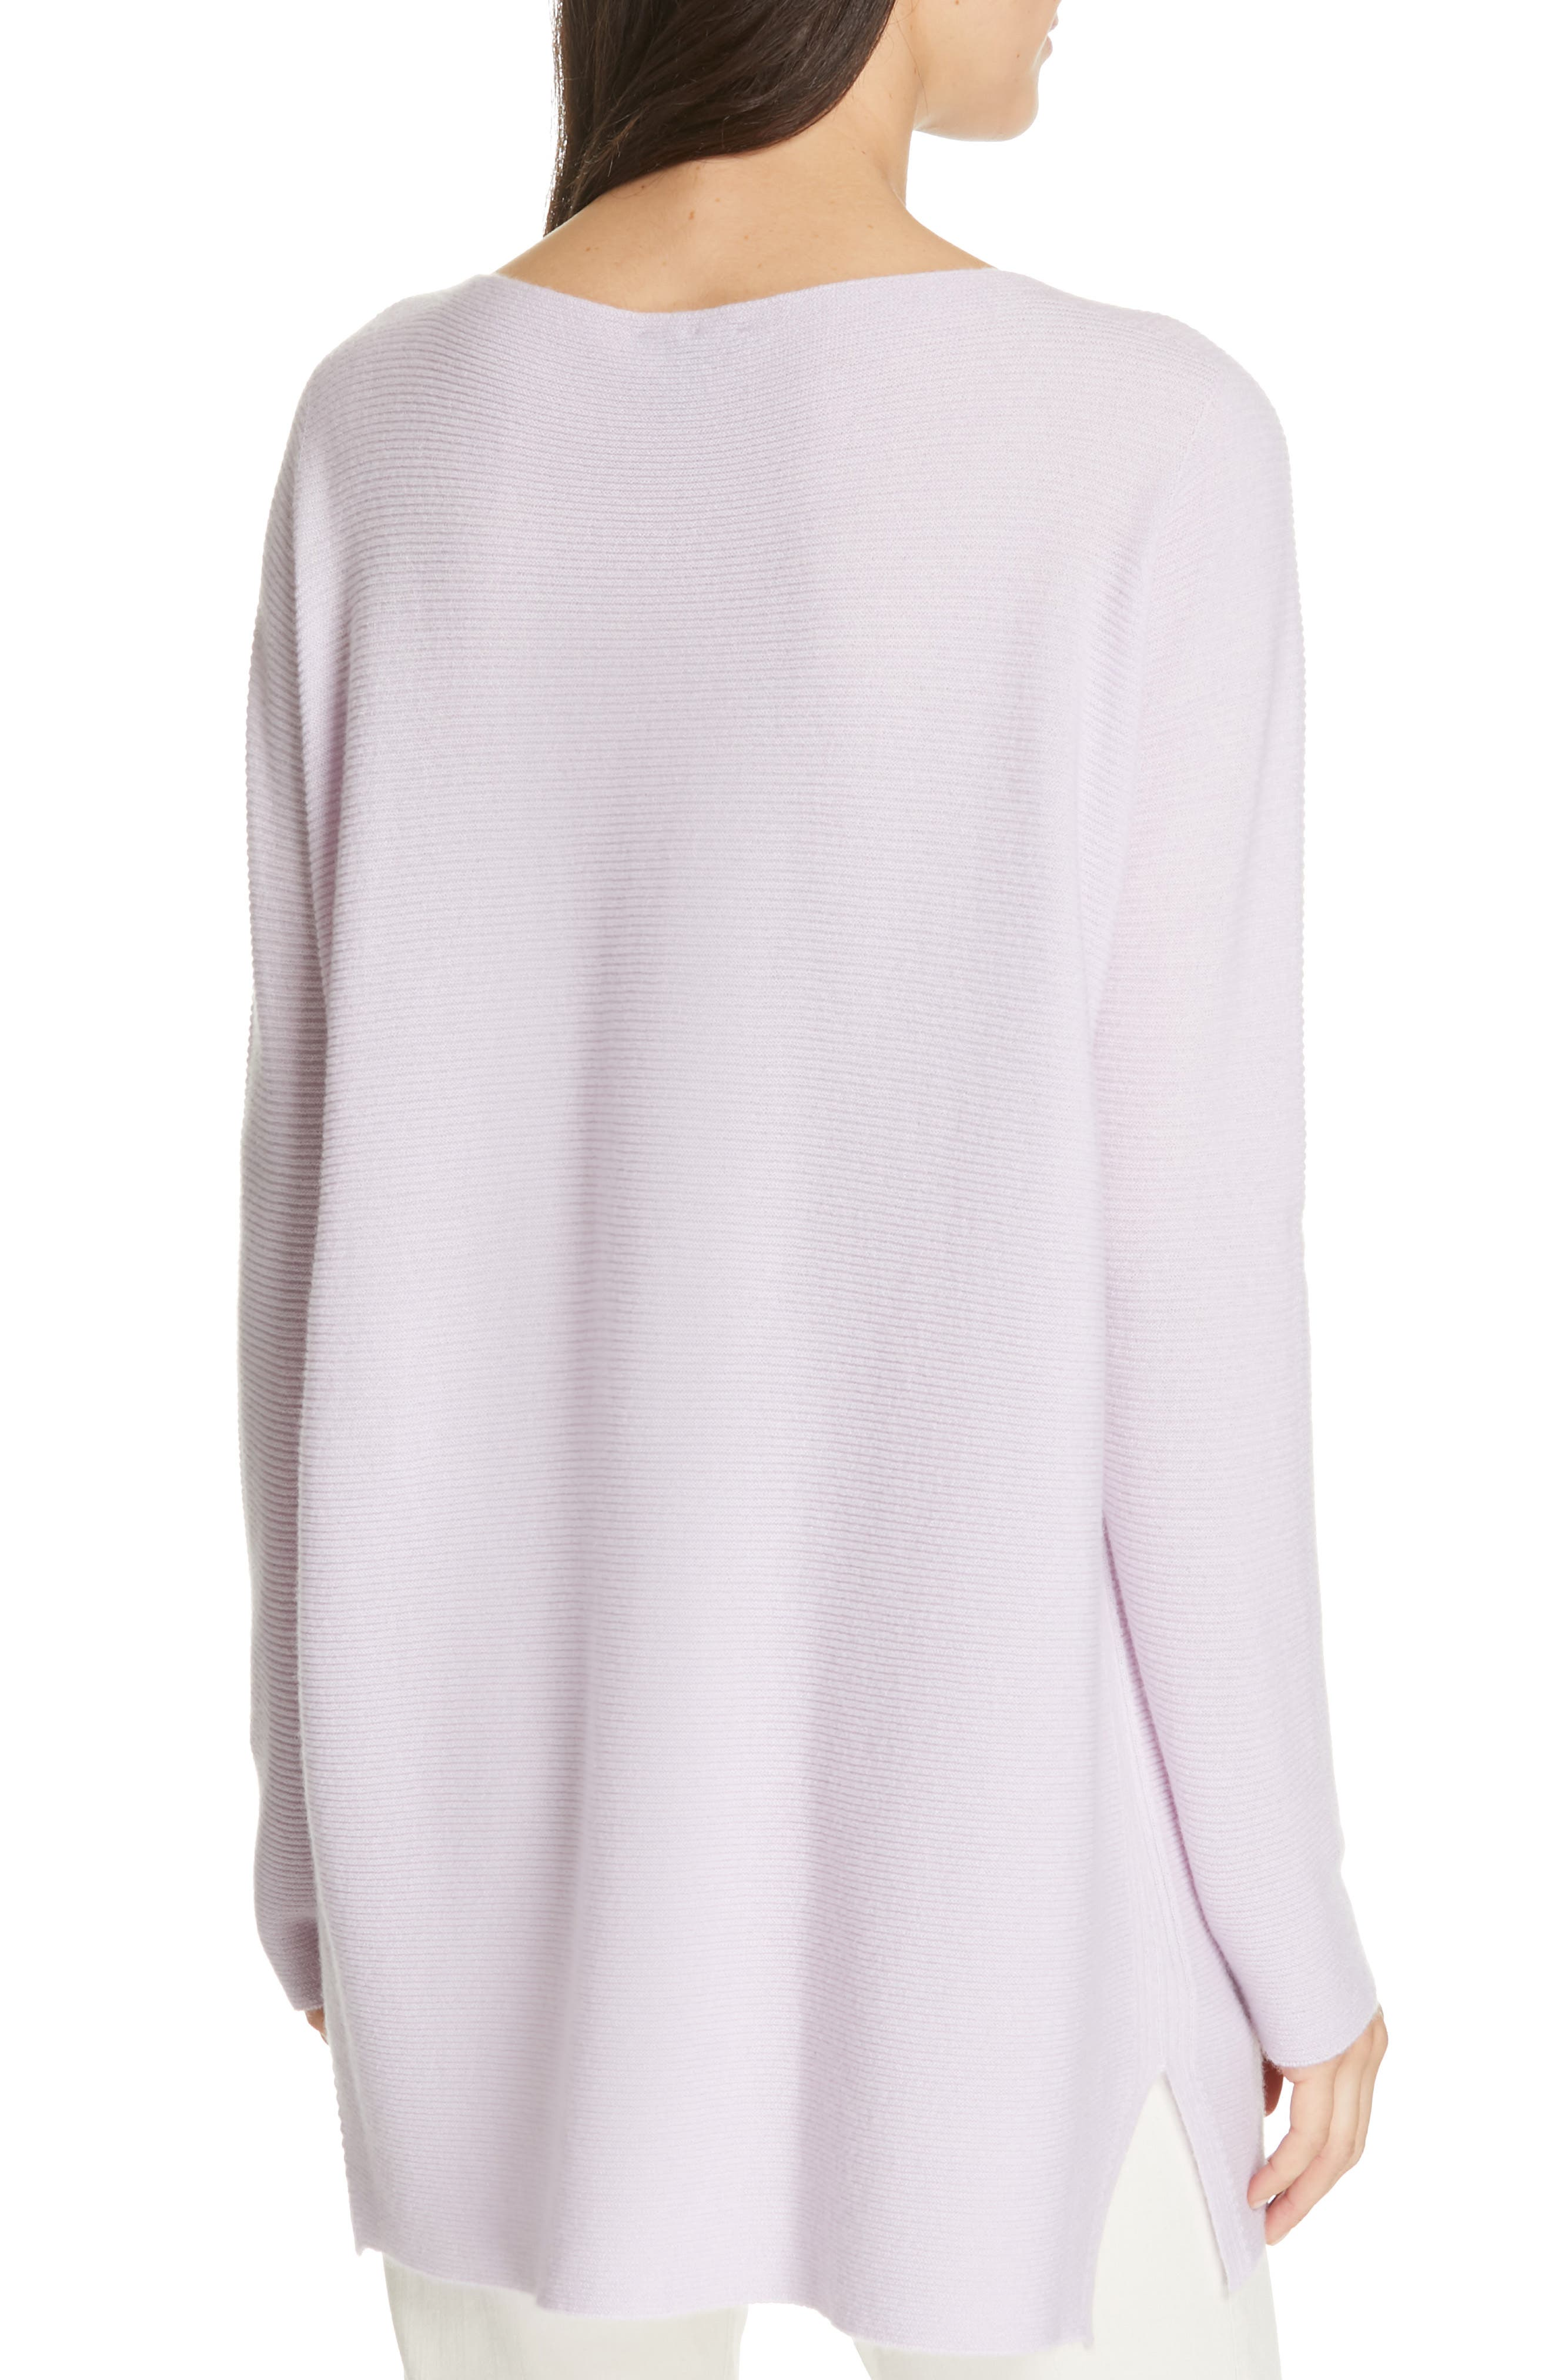 EILEEN FISHER, Bateau Neck Cashmere Tunic Sweater, Alternate thumbnail 2, color, MALLOW